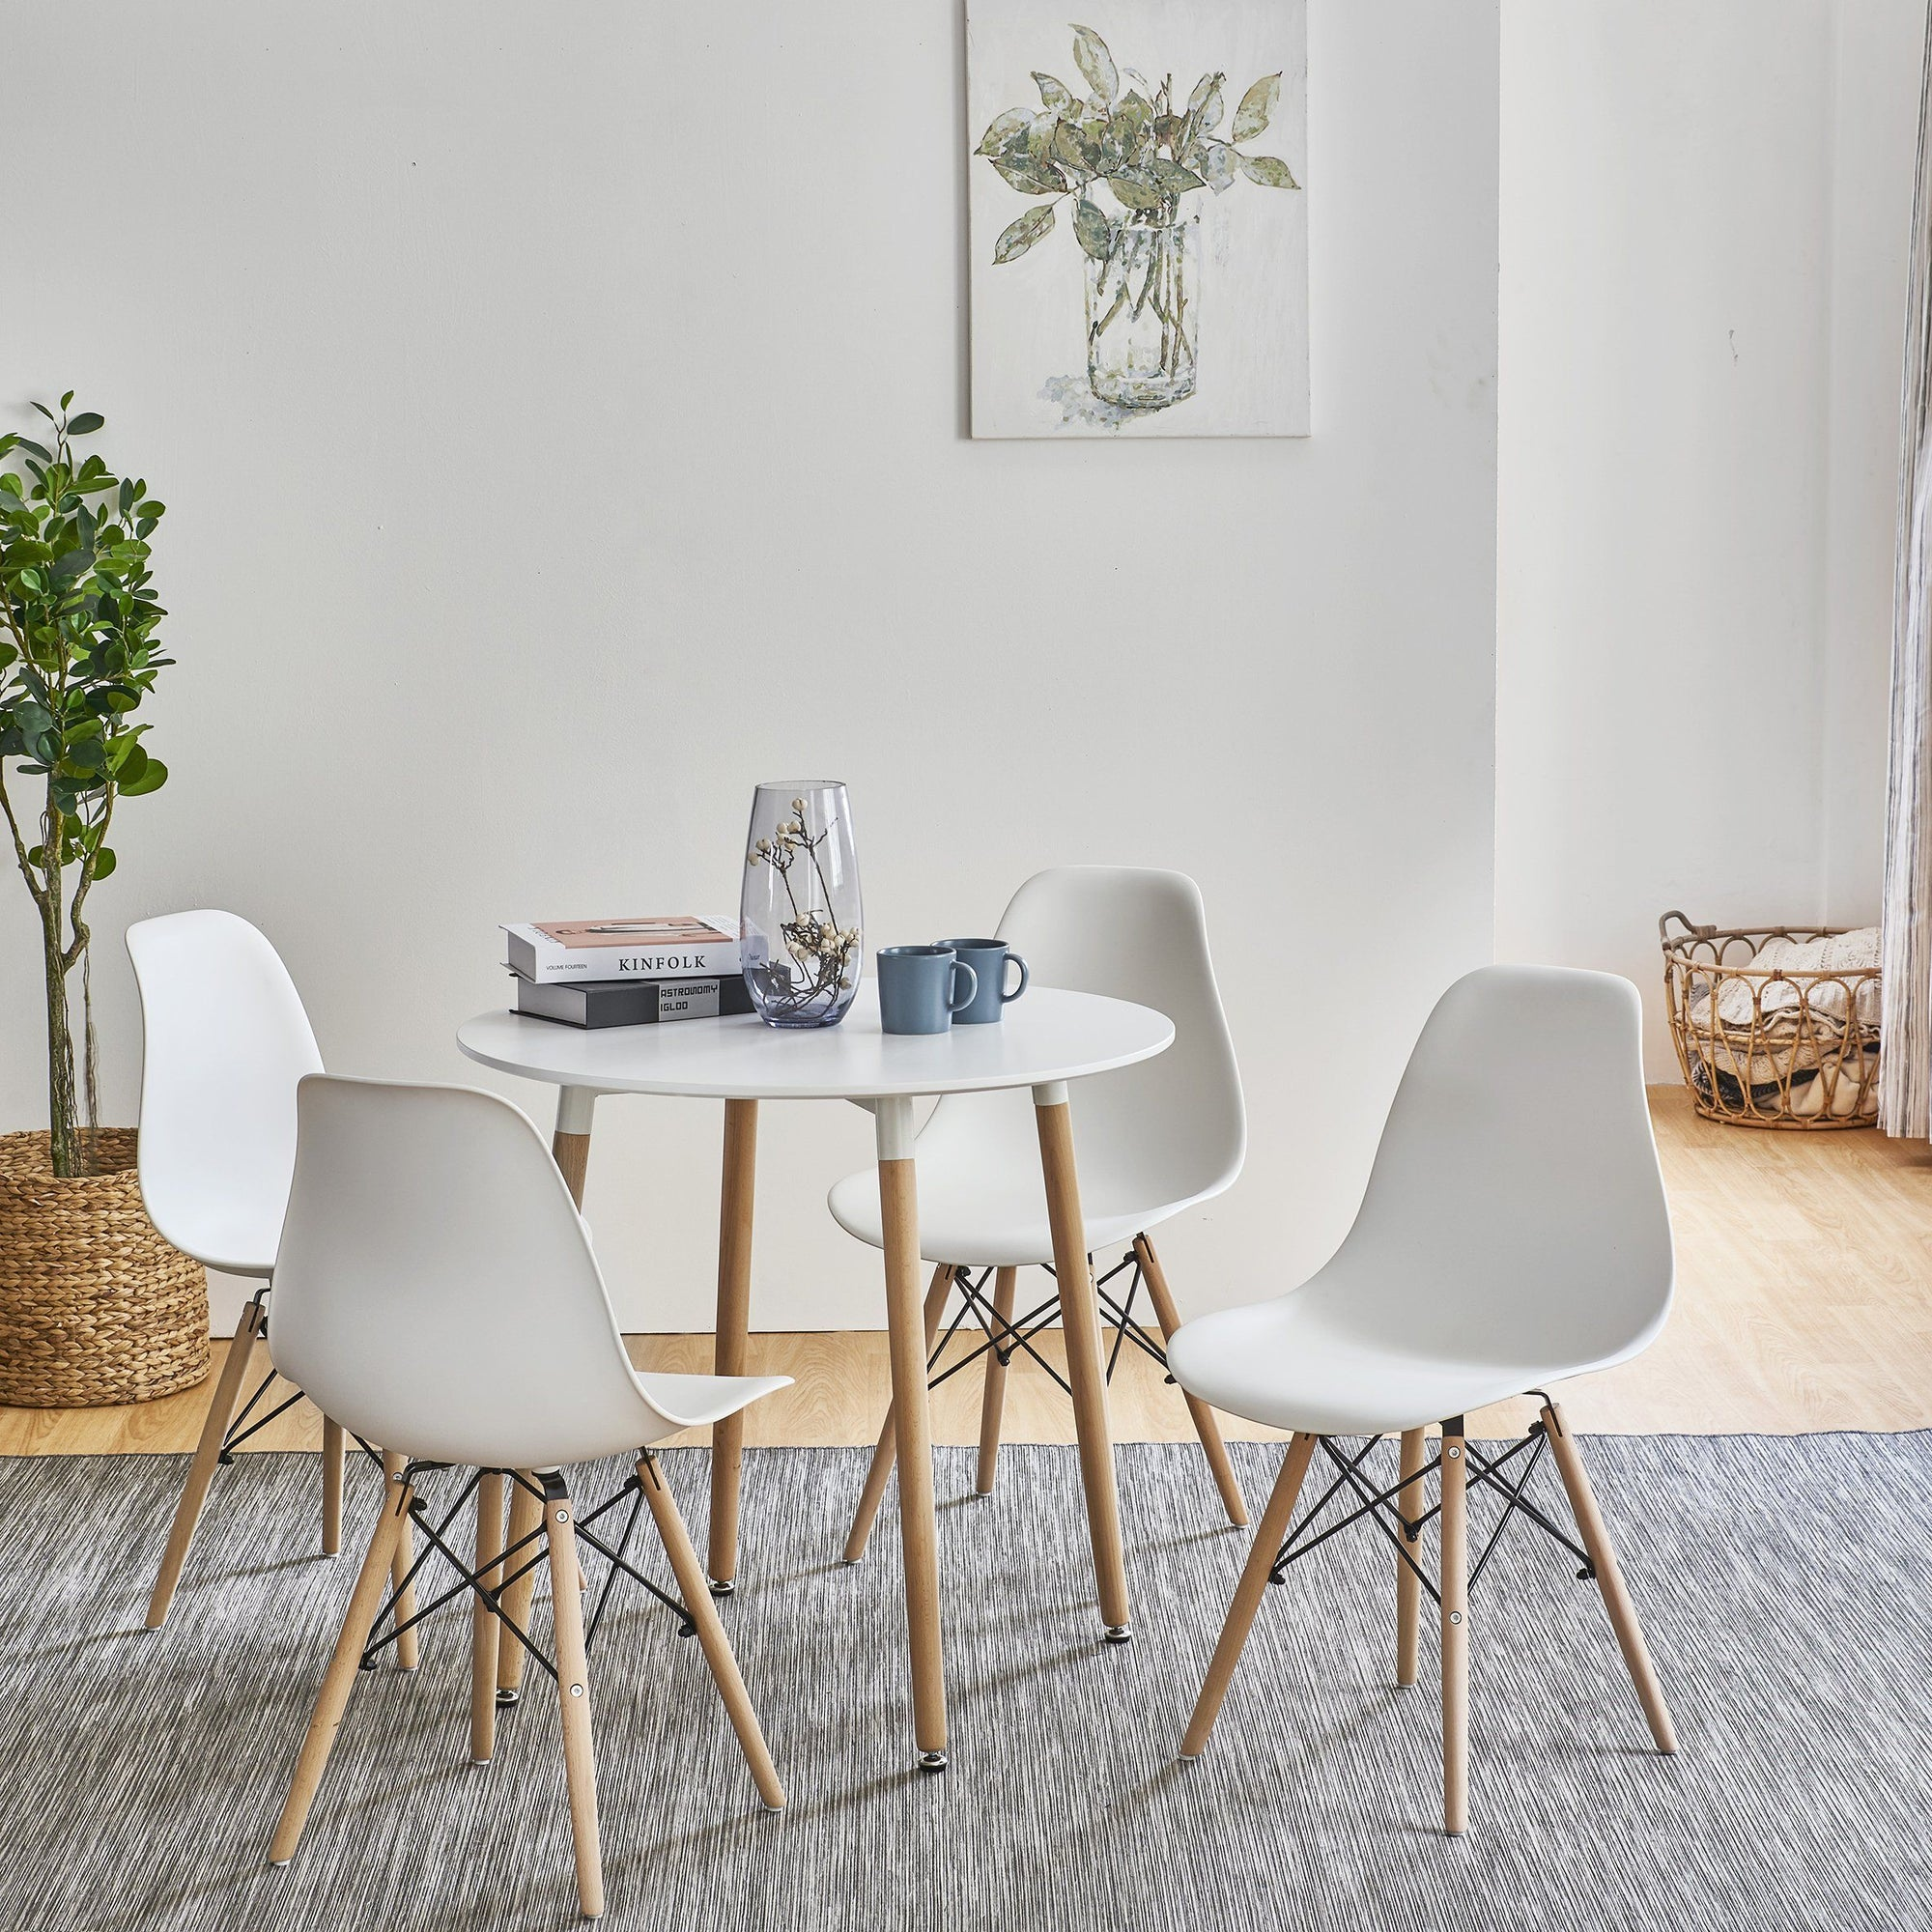 Inge Round Kitchen Table with 4 White Chairs - Laura James